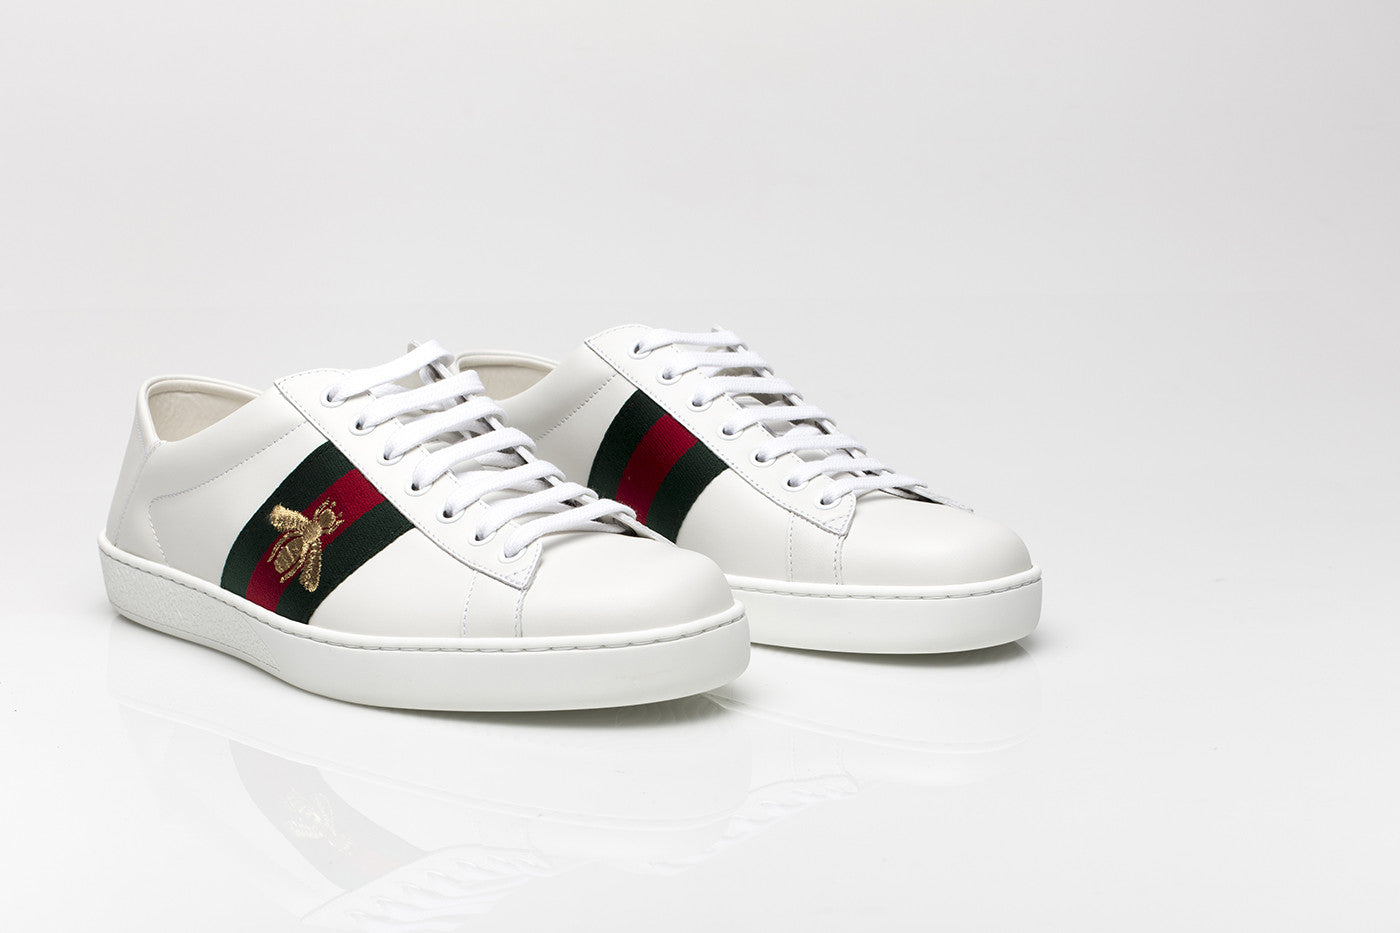 36ee1d48452c Ace Embroidered Bee Leather Sneakers Ace Embroidered Bee Leather Sneakers  ...